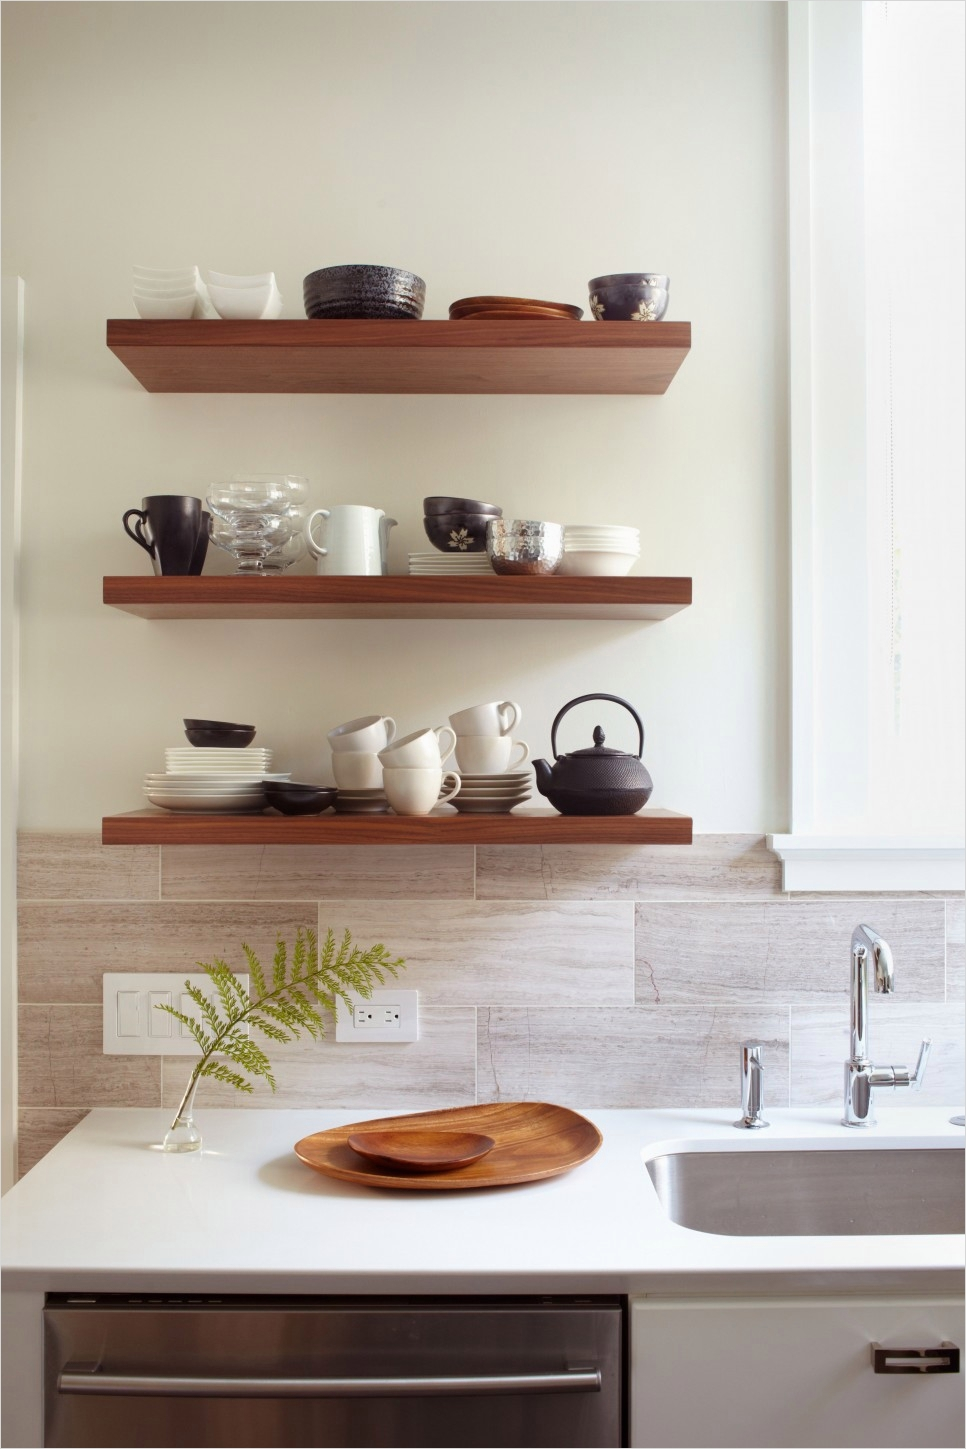 42 Stylish Ideas Minimalist Kitchen Shelves 28 Sublime Oak Wood Wall Floating Shelving Units Cabinet with White Ceramic Countertop and 9